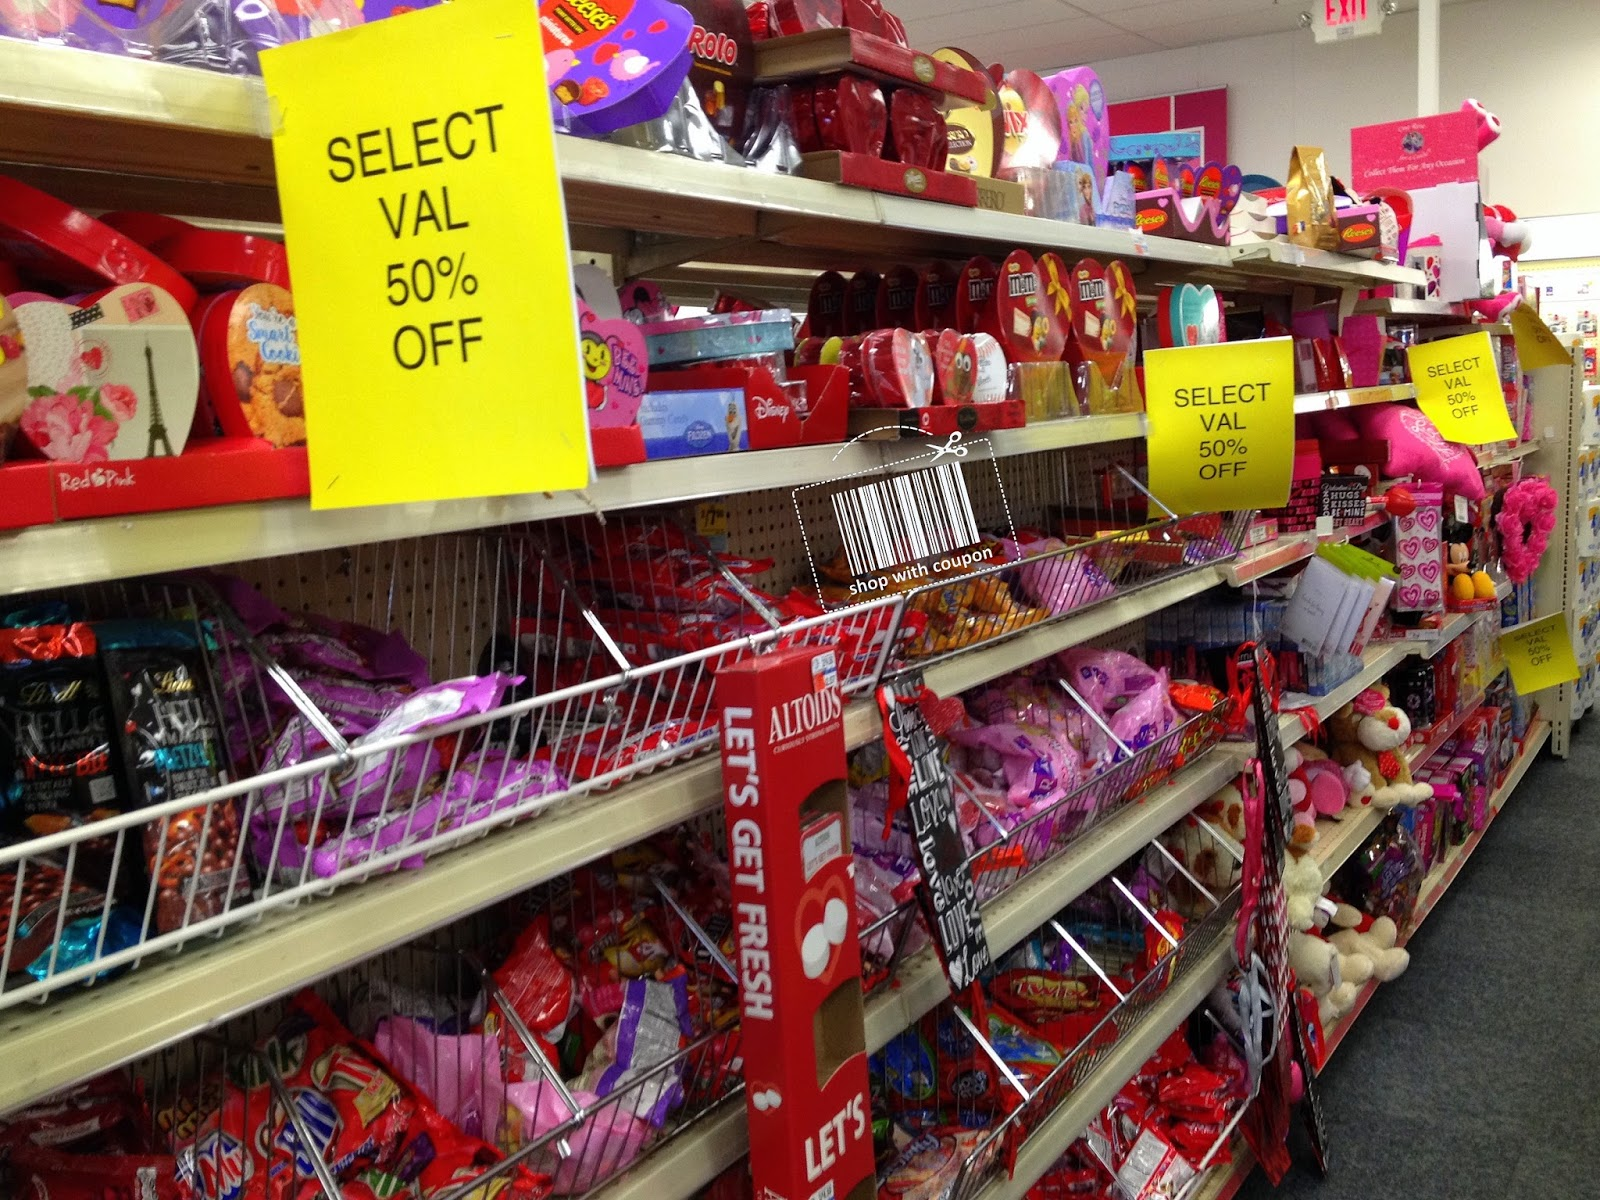 Cvs Clearance Save 50 On Select Valentine Items